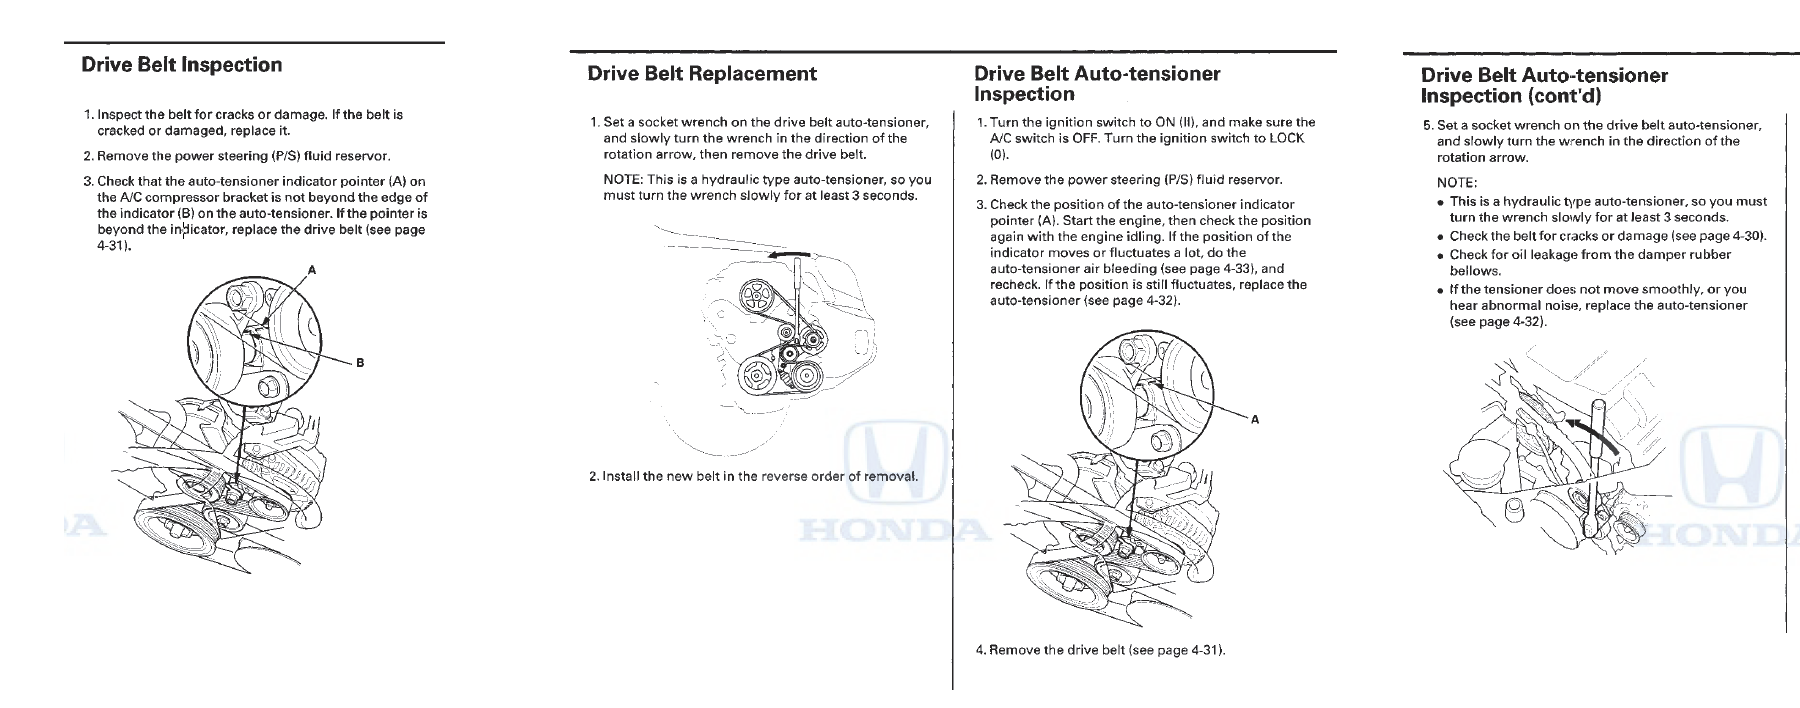 Drive Serpentine Belt Replacement Is A Beast Honda Pilot Honda Pilot Forums